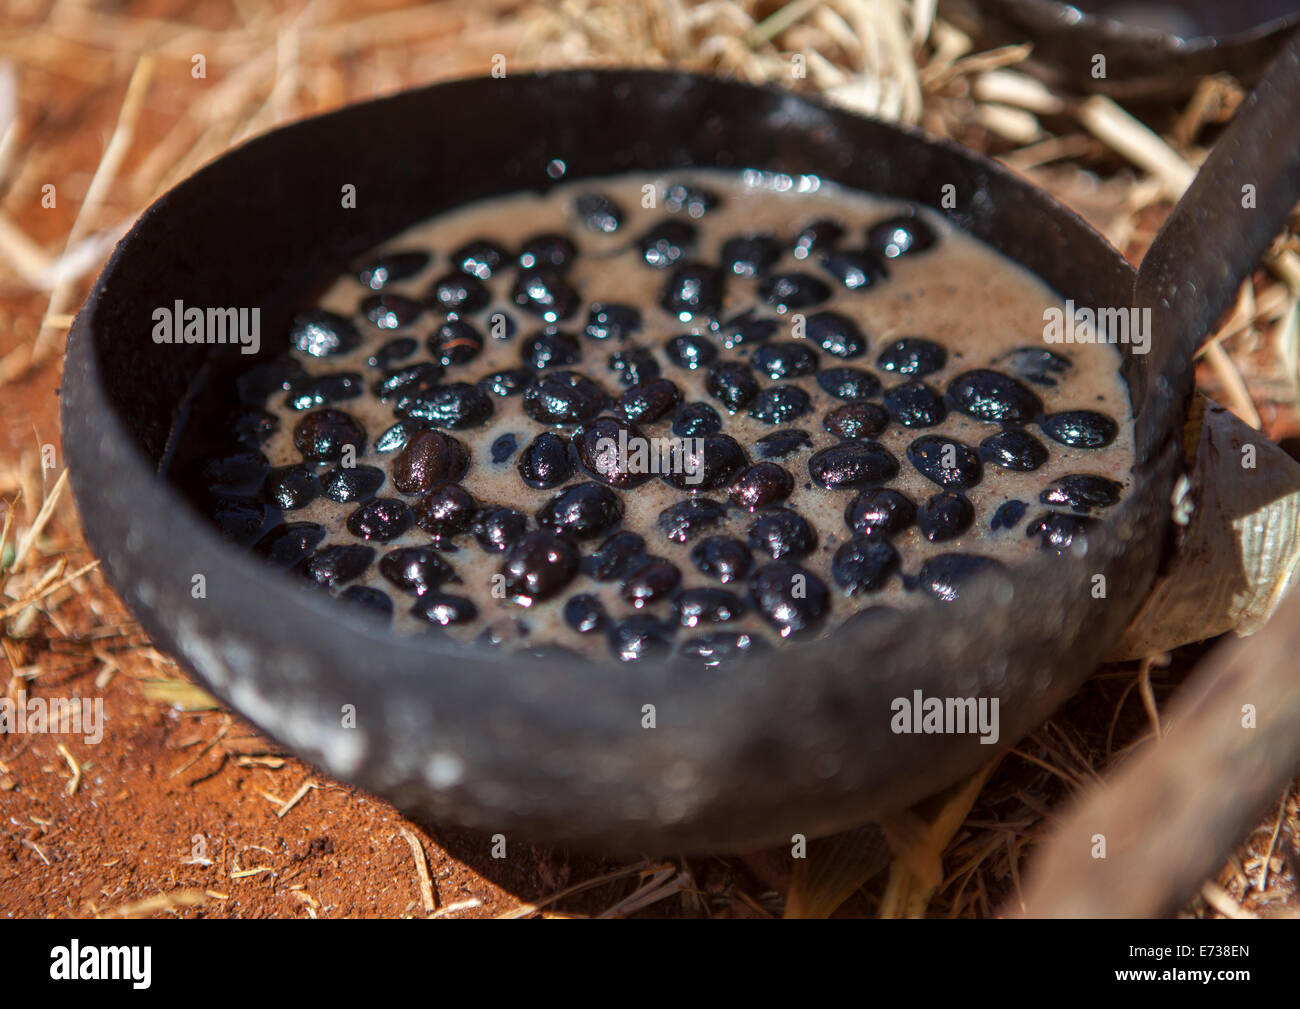 Coffee Beans Roasted In Butter, Borana Tribe, Yabelo, Ethiopia - Stock Image